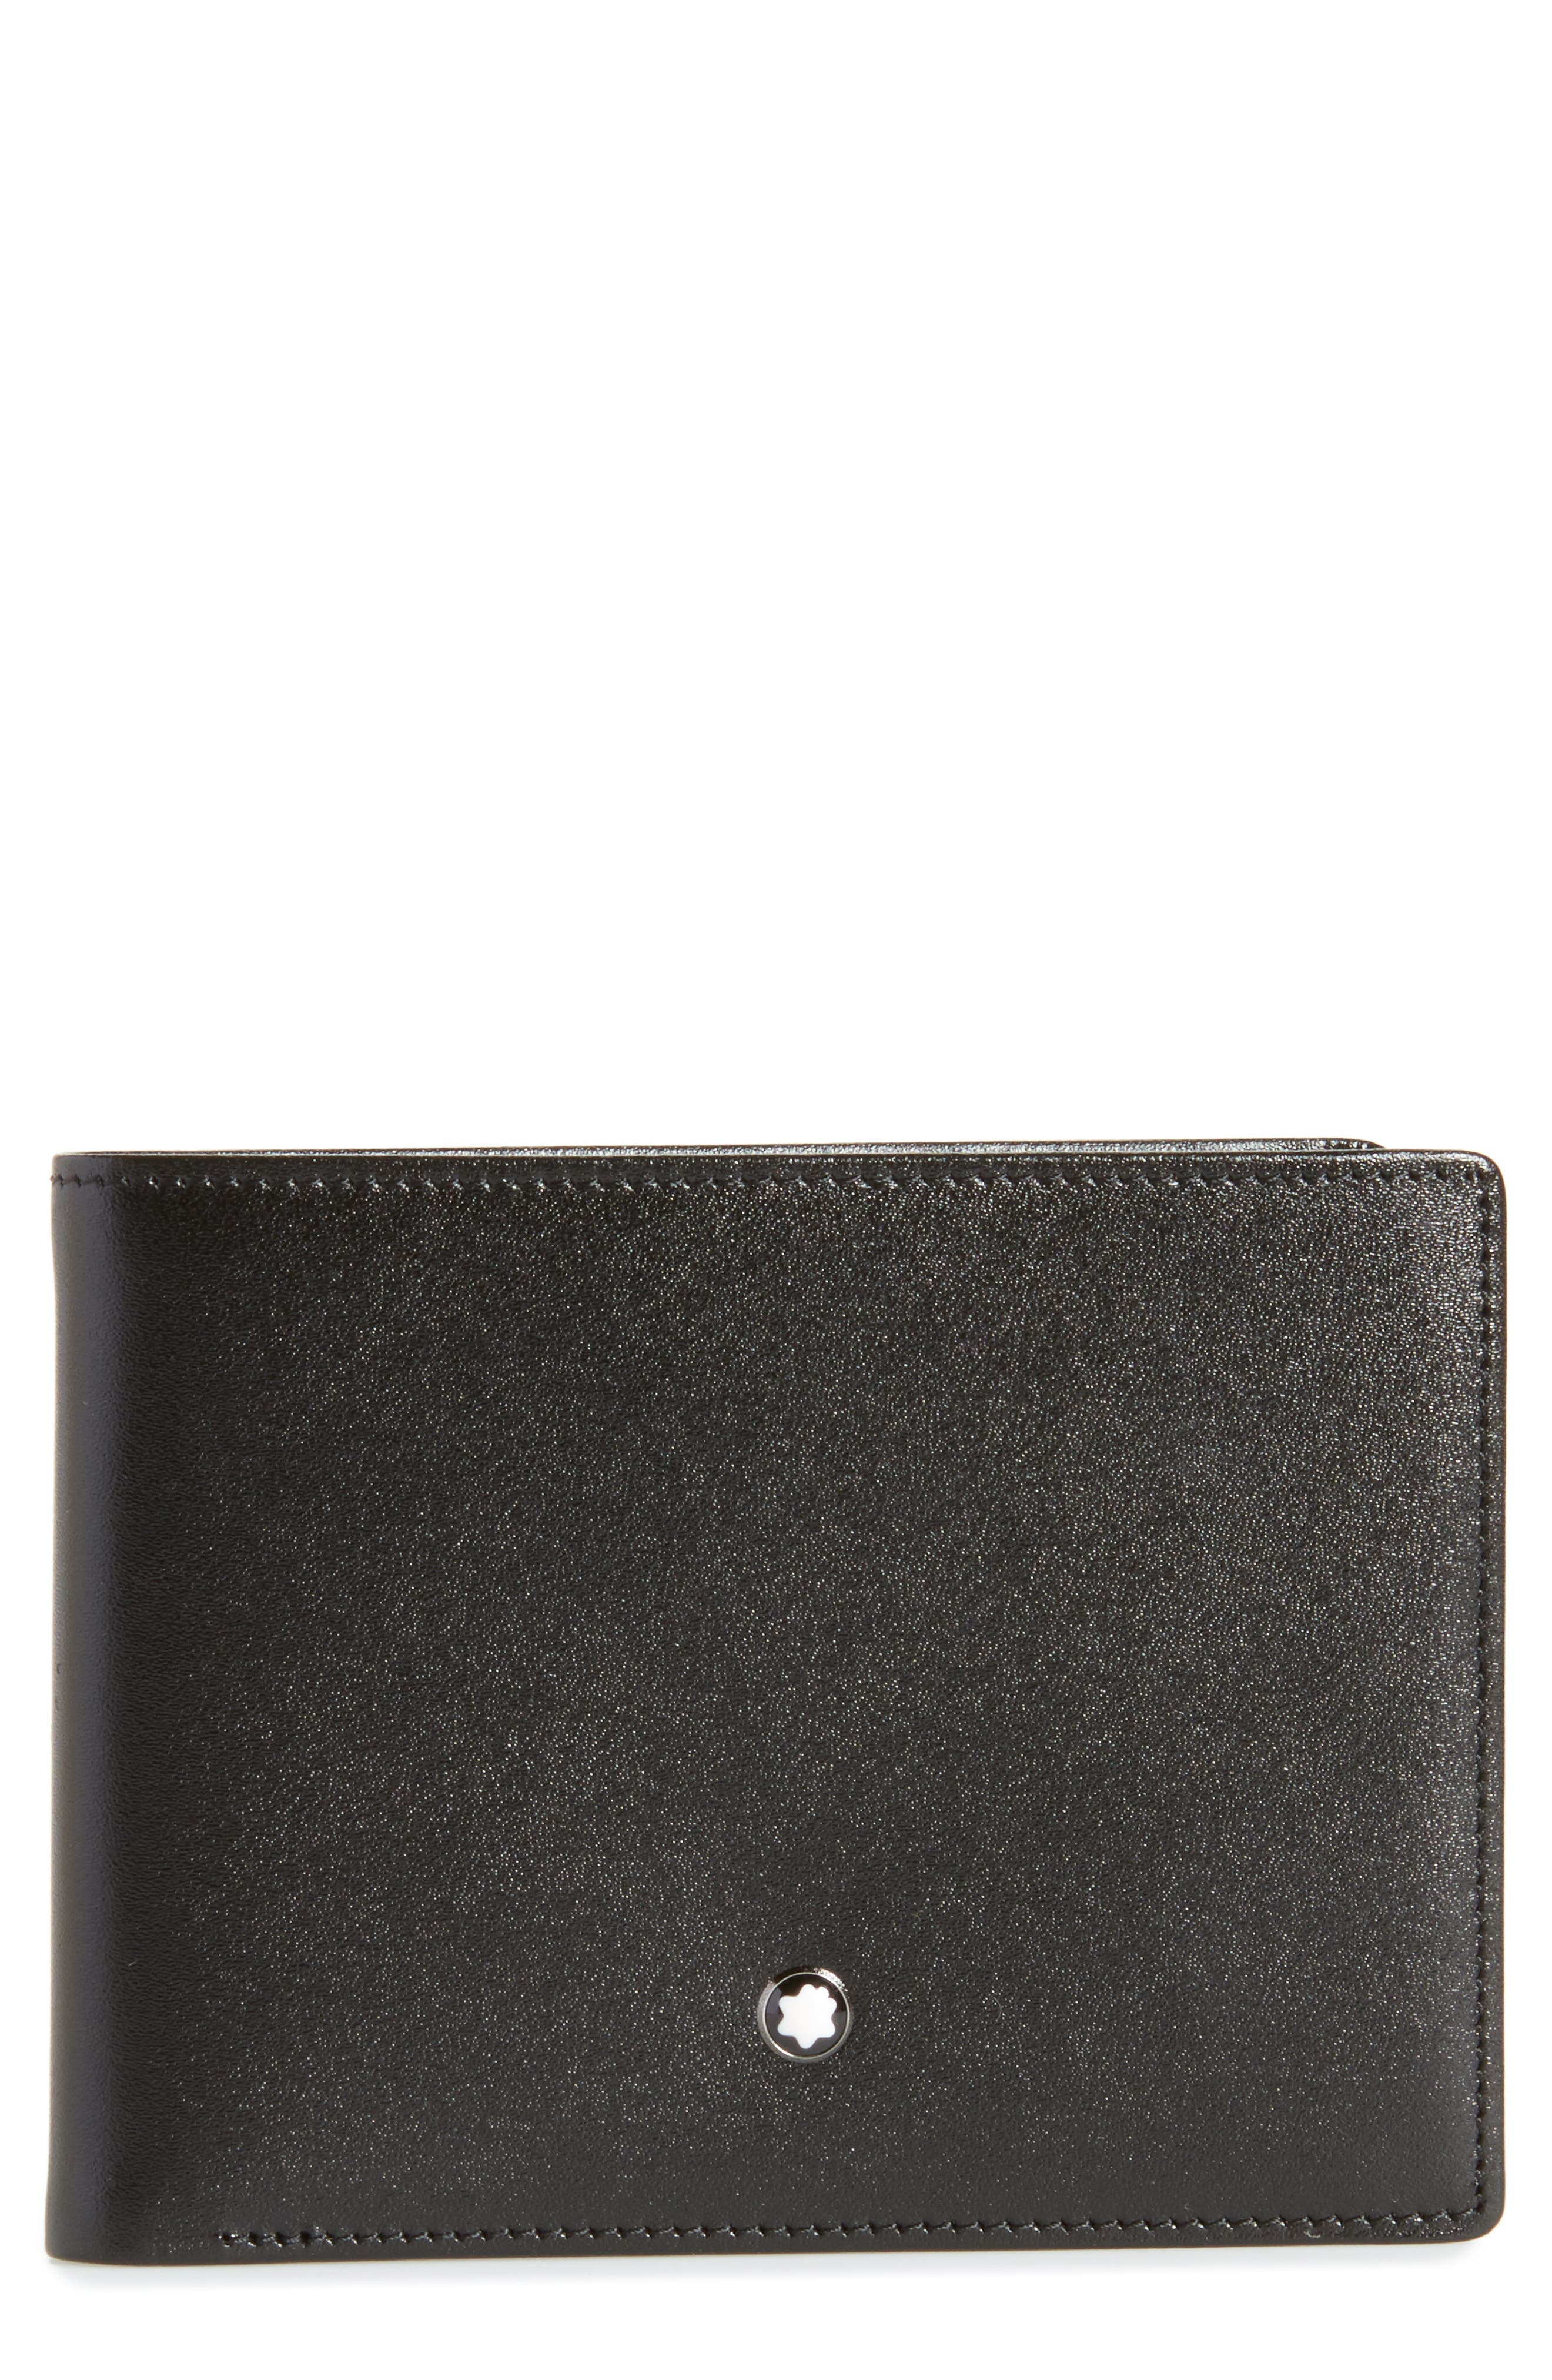 Bifold Leather Wallet,                             Main thumbnail 1, color,                             001